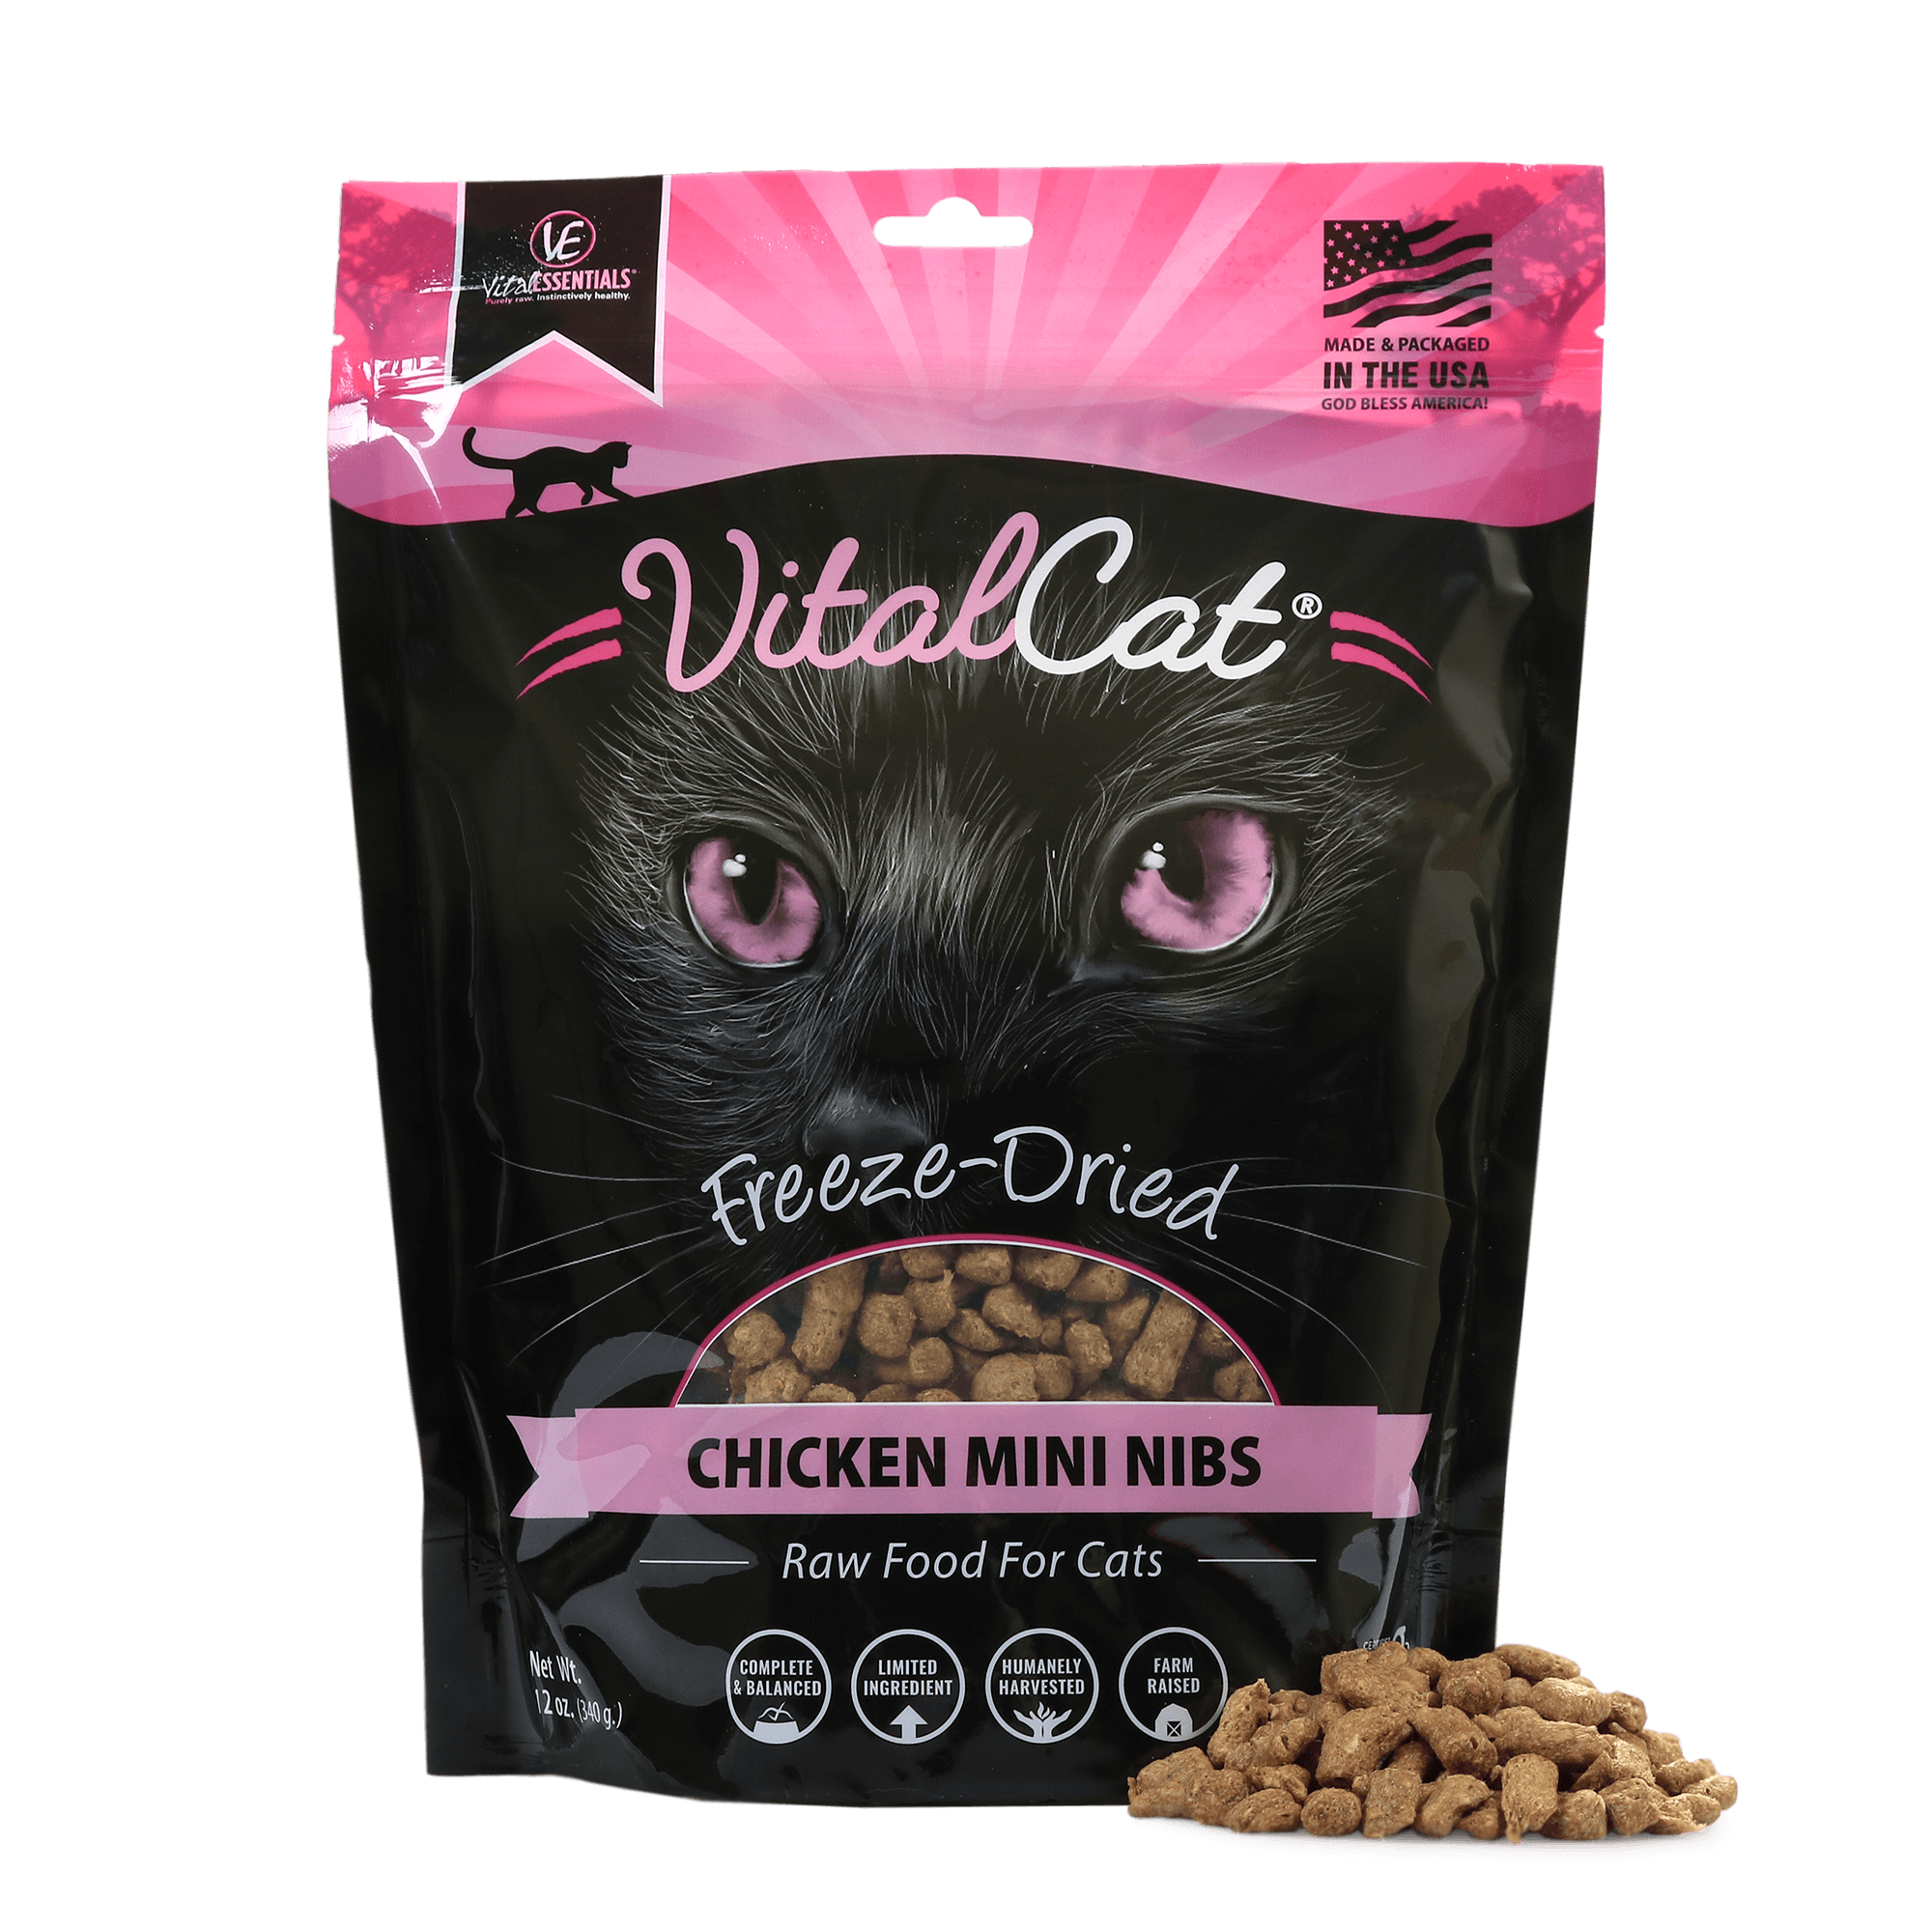 Freeze Dried Mini Nibs Raw Chicken Cat Food